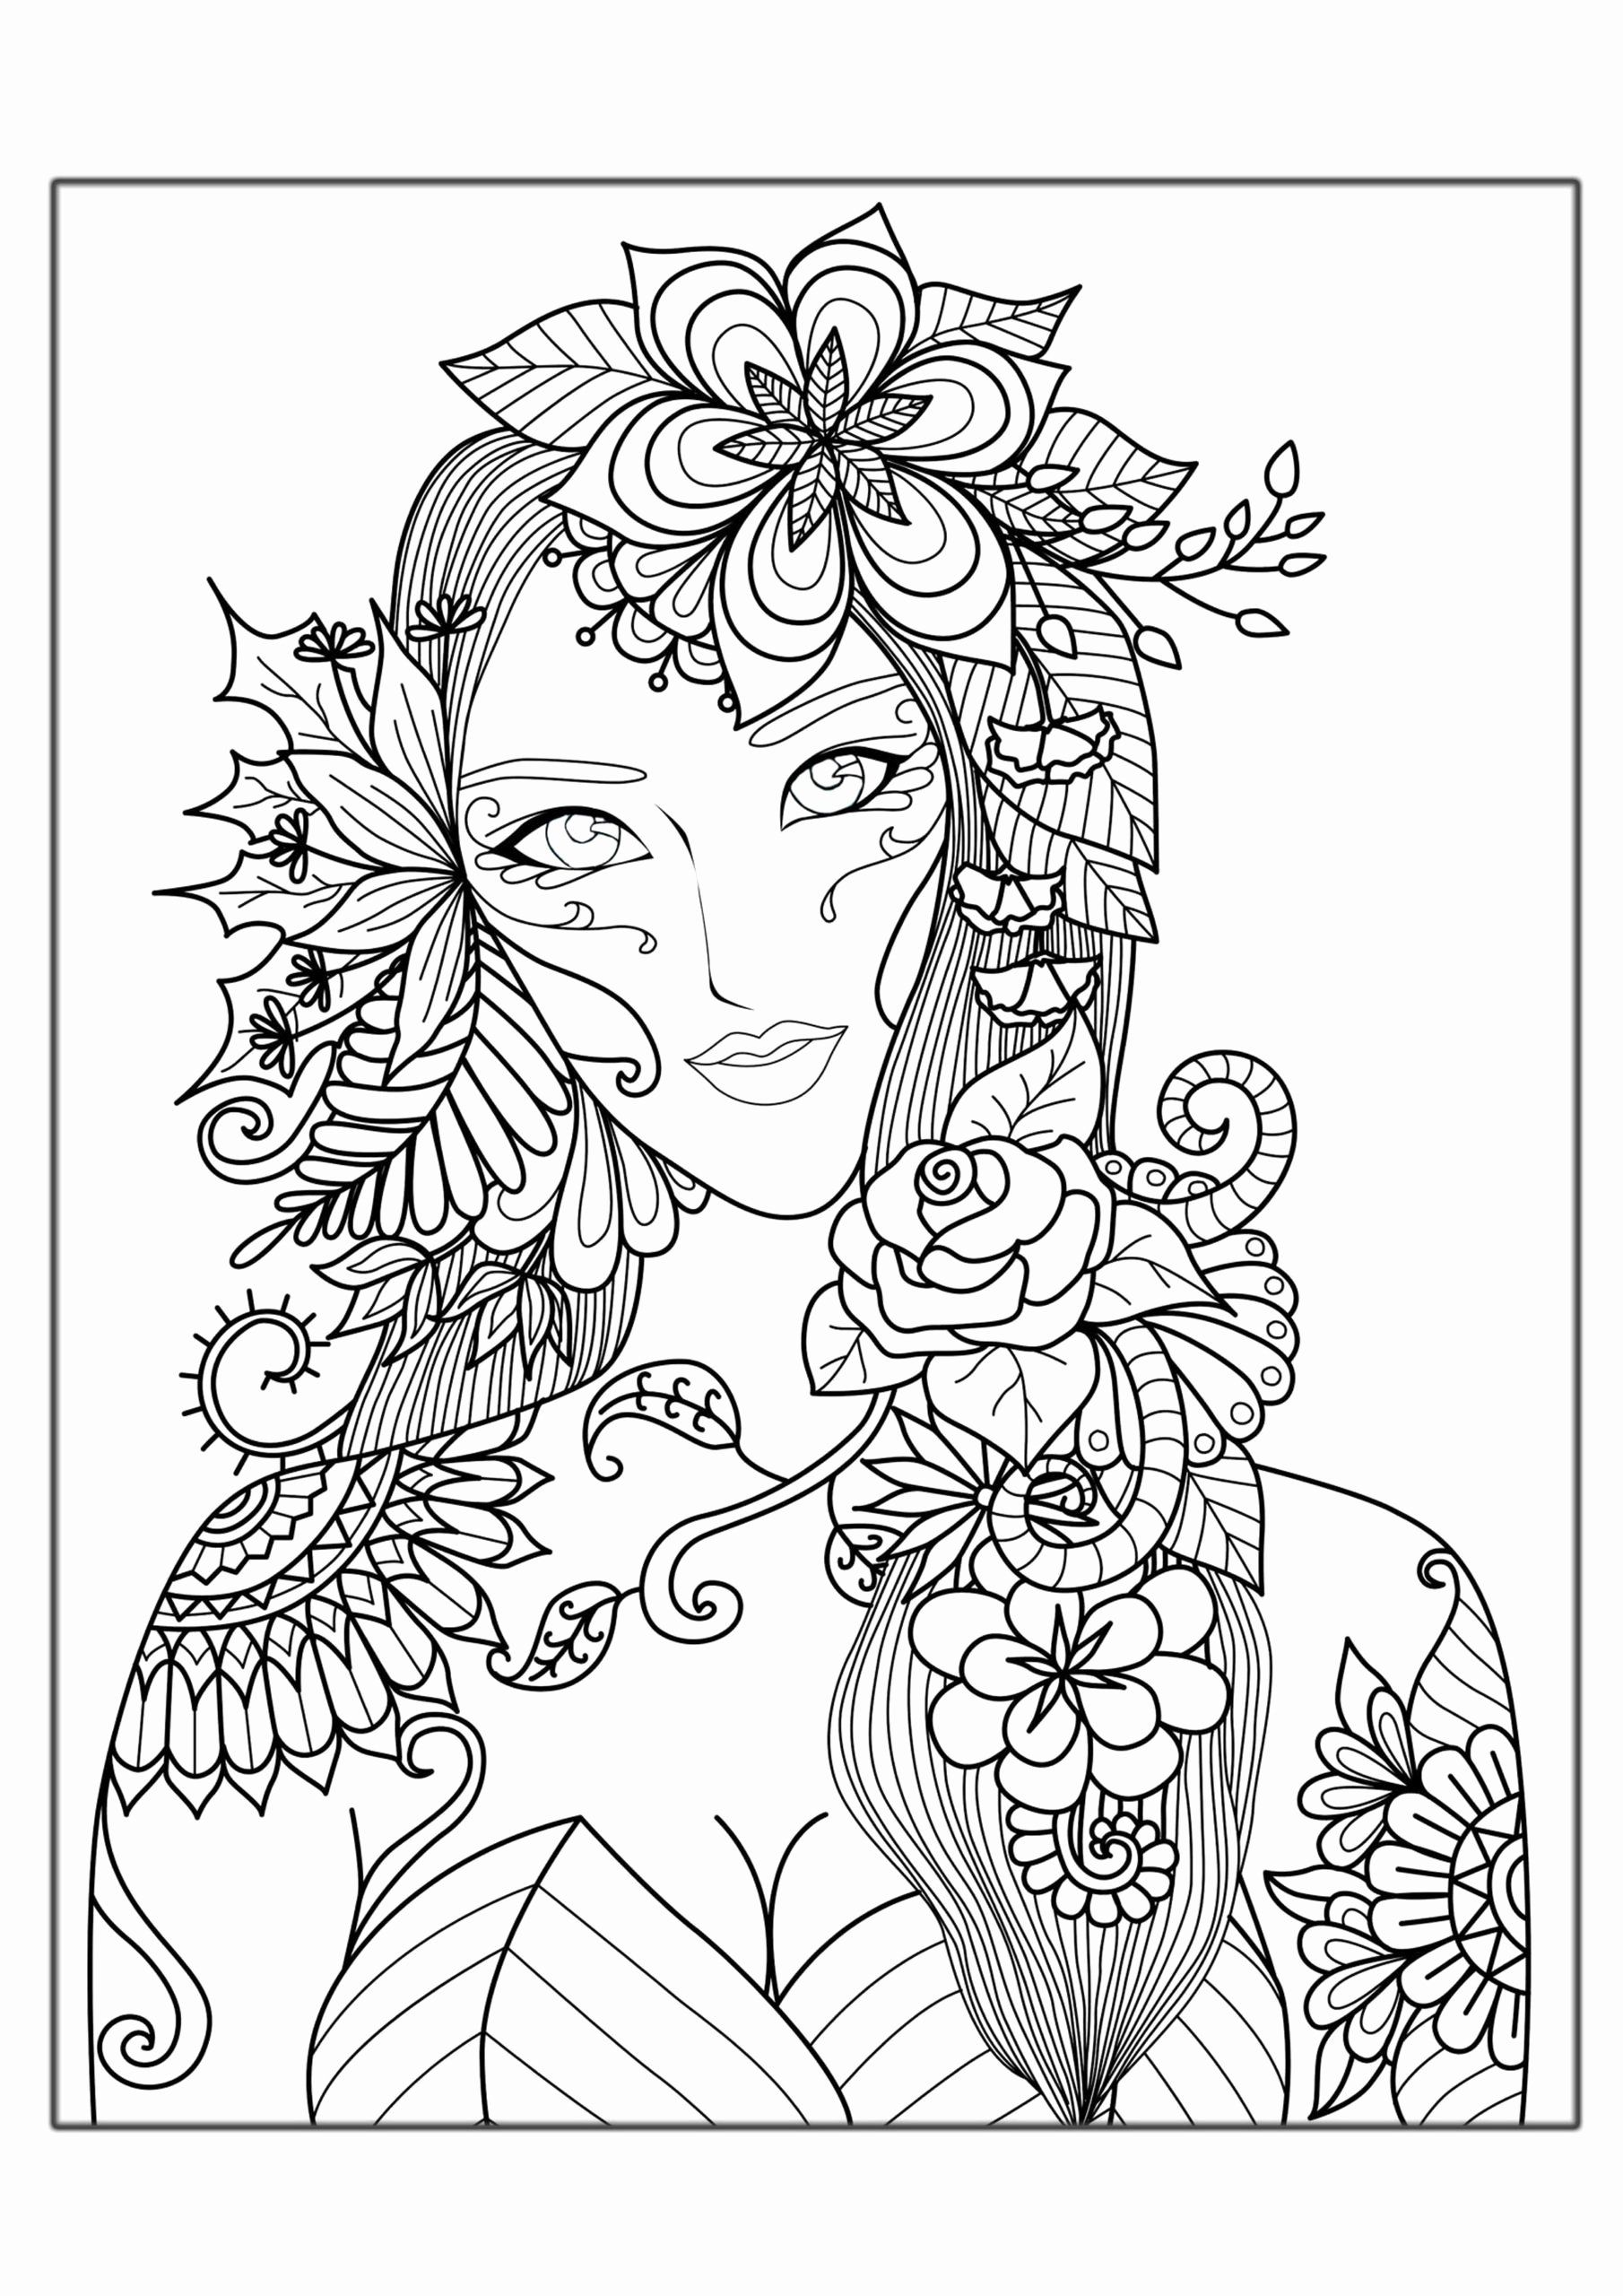 Free Coloring Papers Printables Fresh Coloring Pages Hard Coloring For Adults Best Kids Fre Detailed Coloring Pages Fall Coloring Pages Abstract Coloring Pages